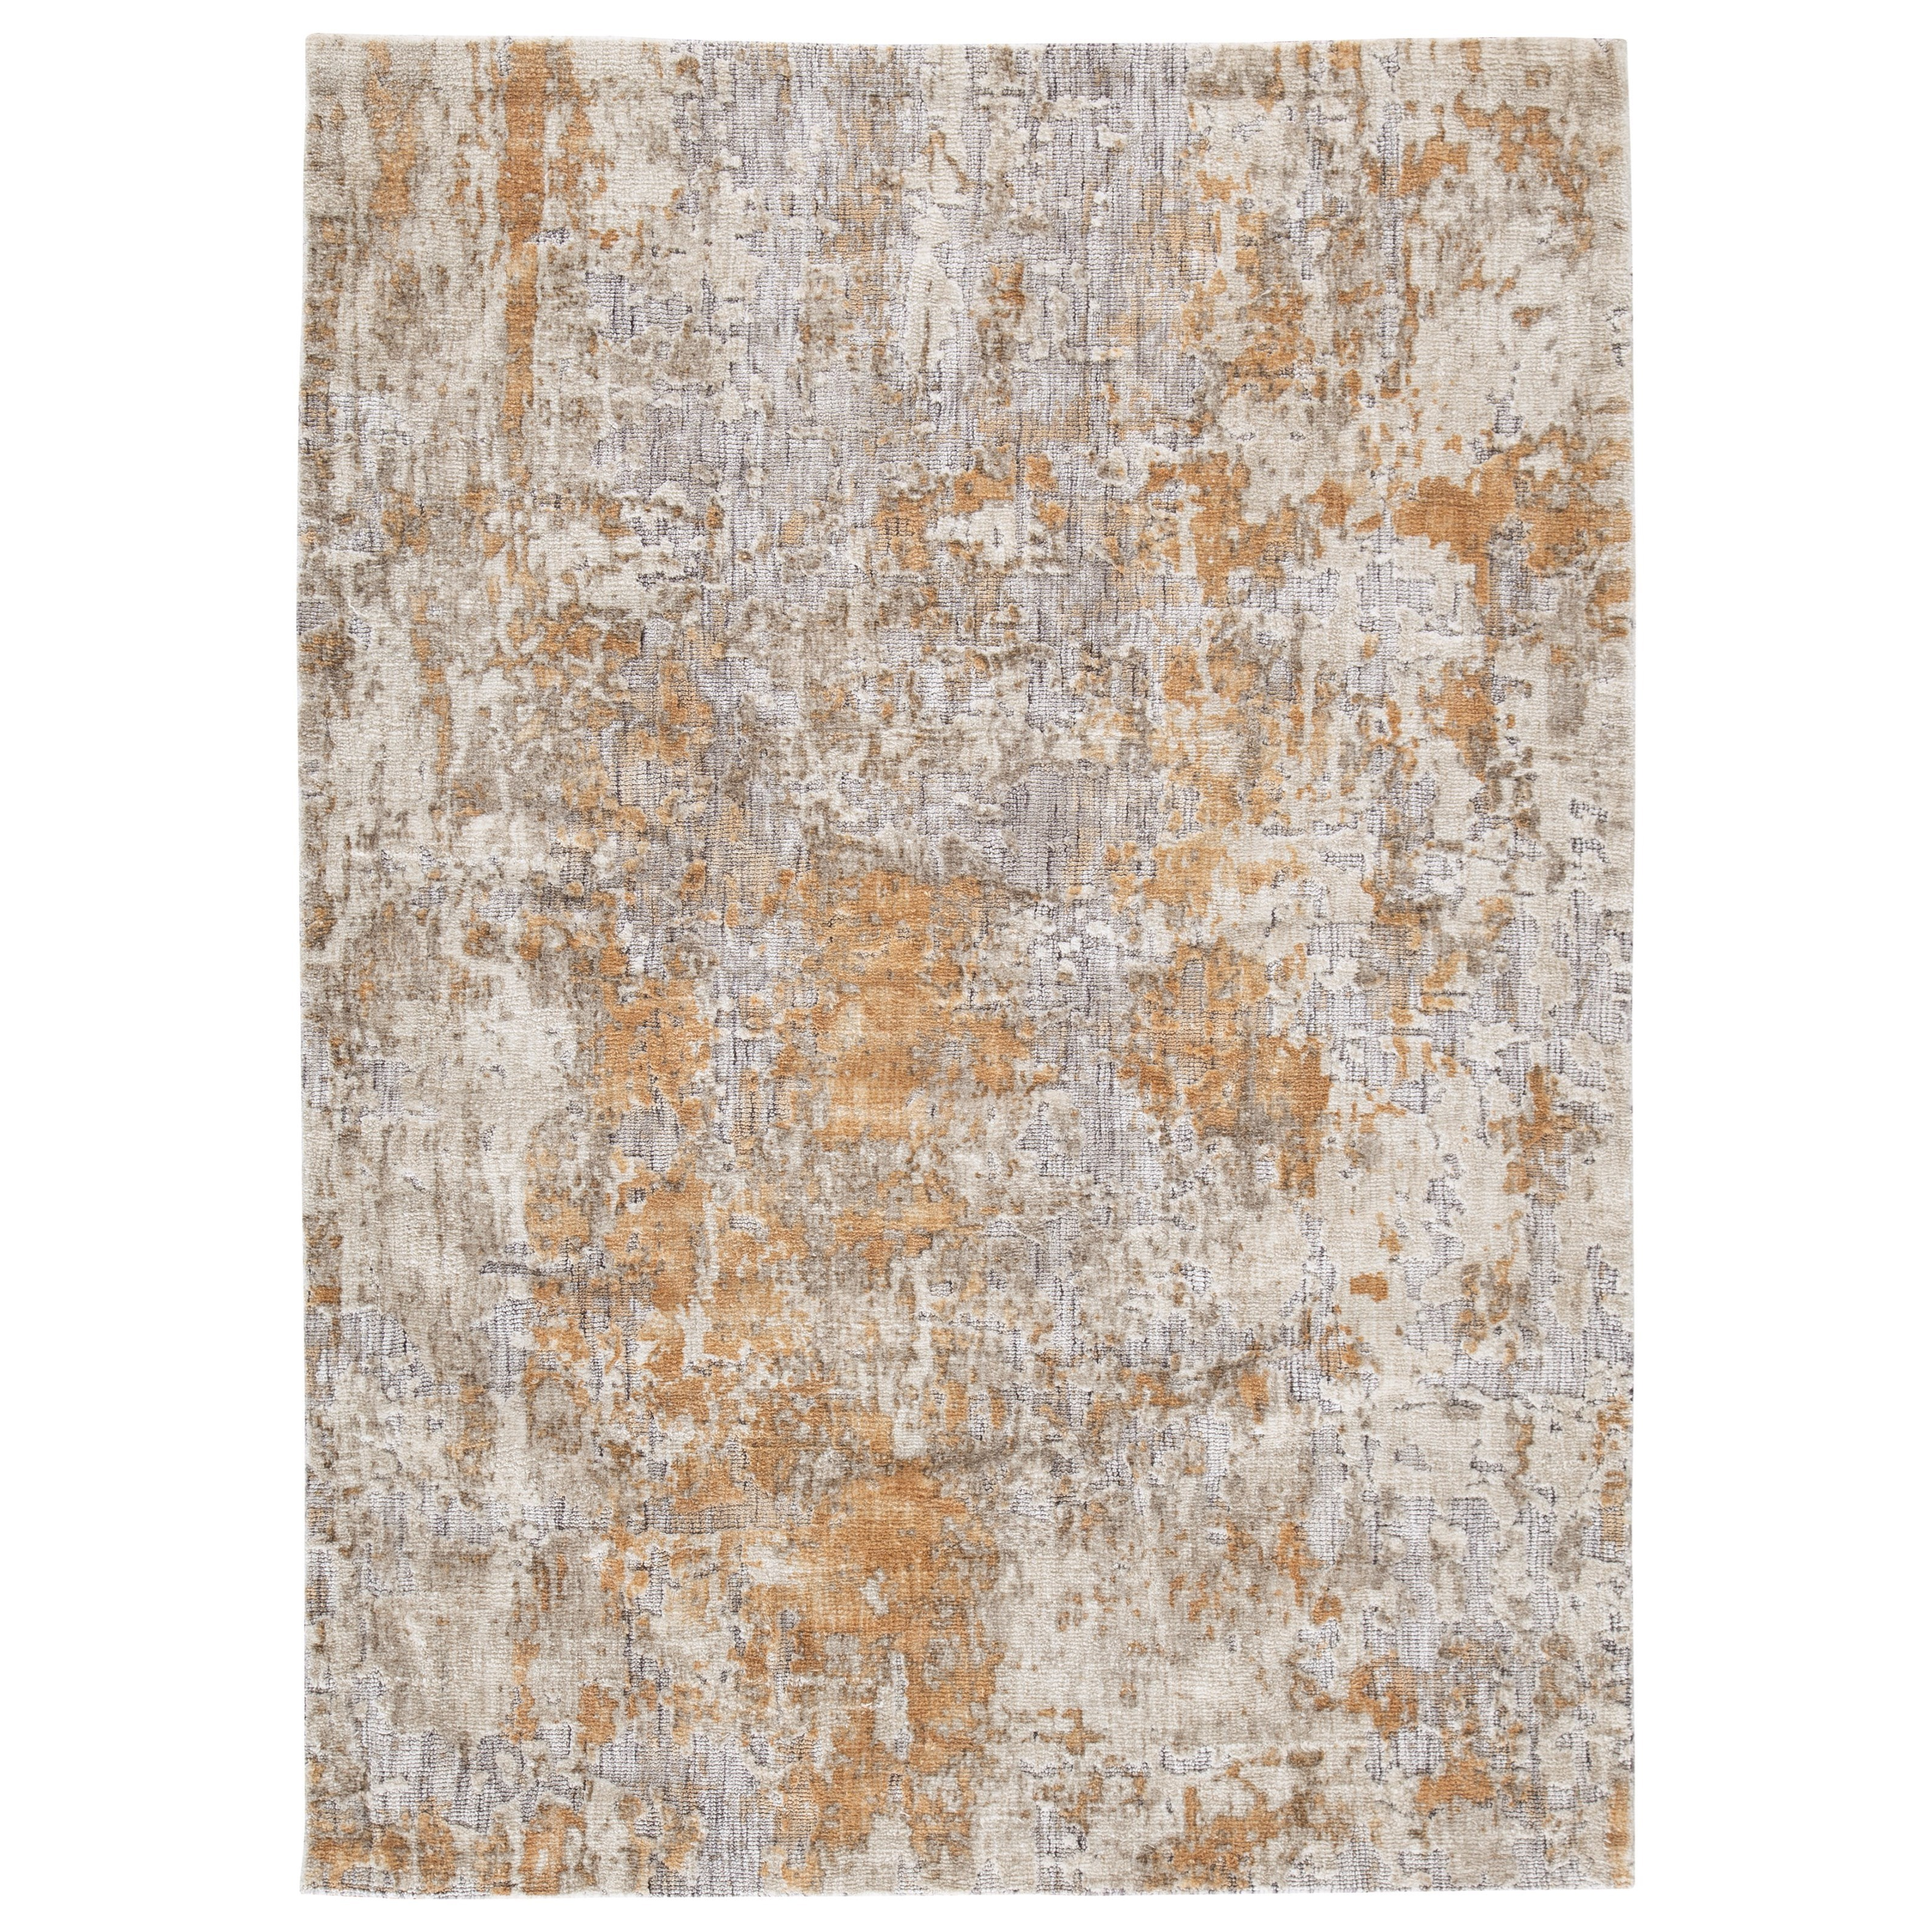 Casual Area Rugs Kamella Gray/Gold Large Rug by Signature at Walker's Furniture